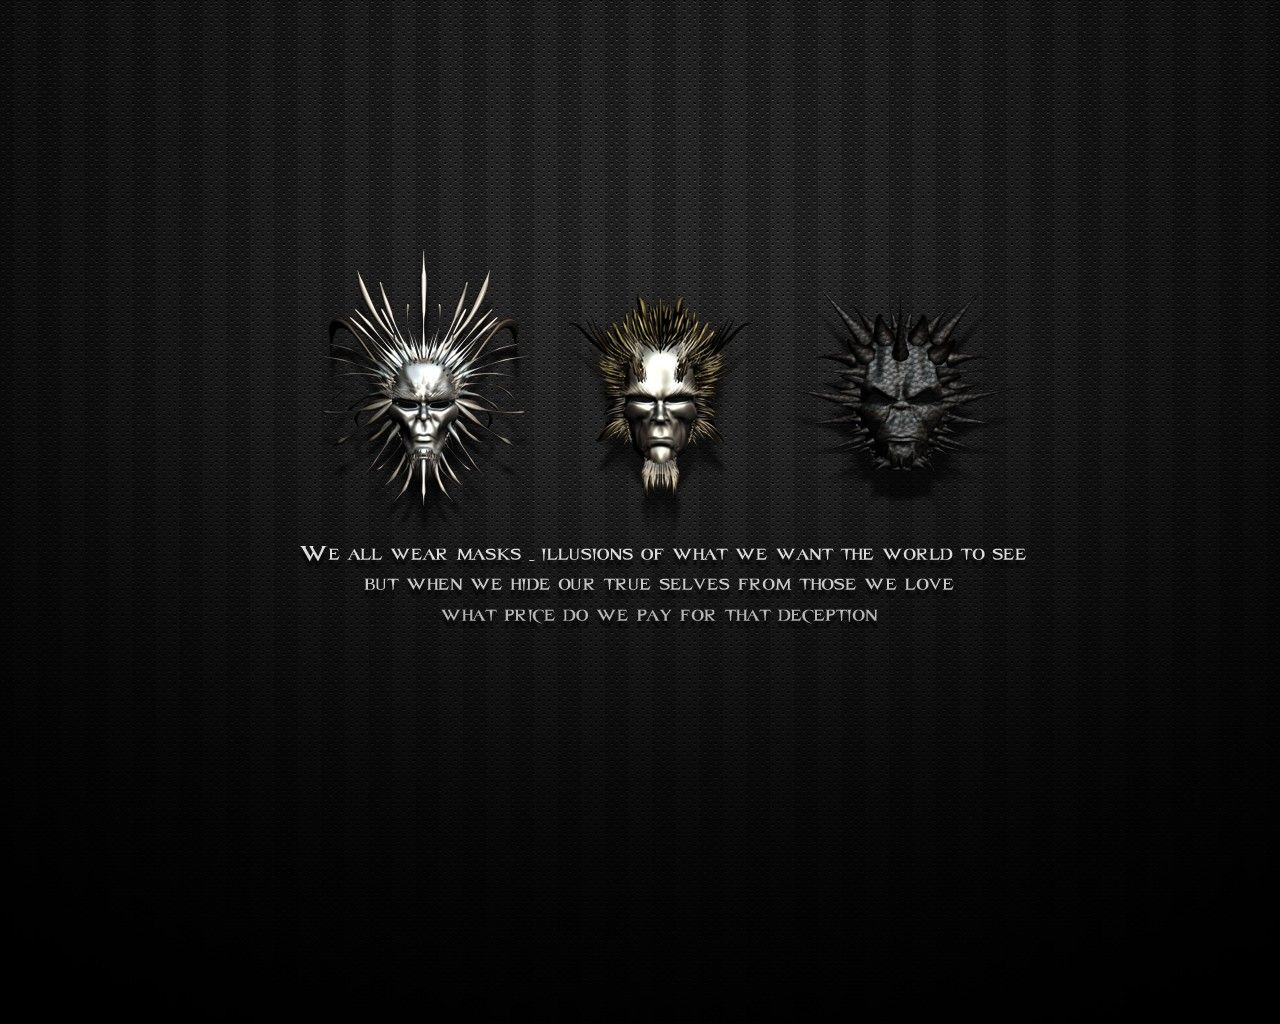 Dark Quotes Wallpapers - Top Free Dark Quotes Backgrounds ...